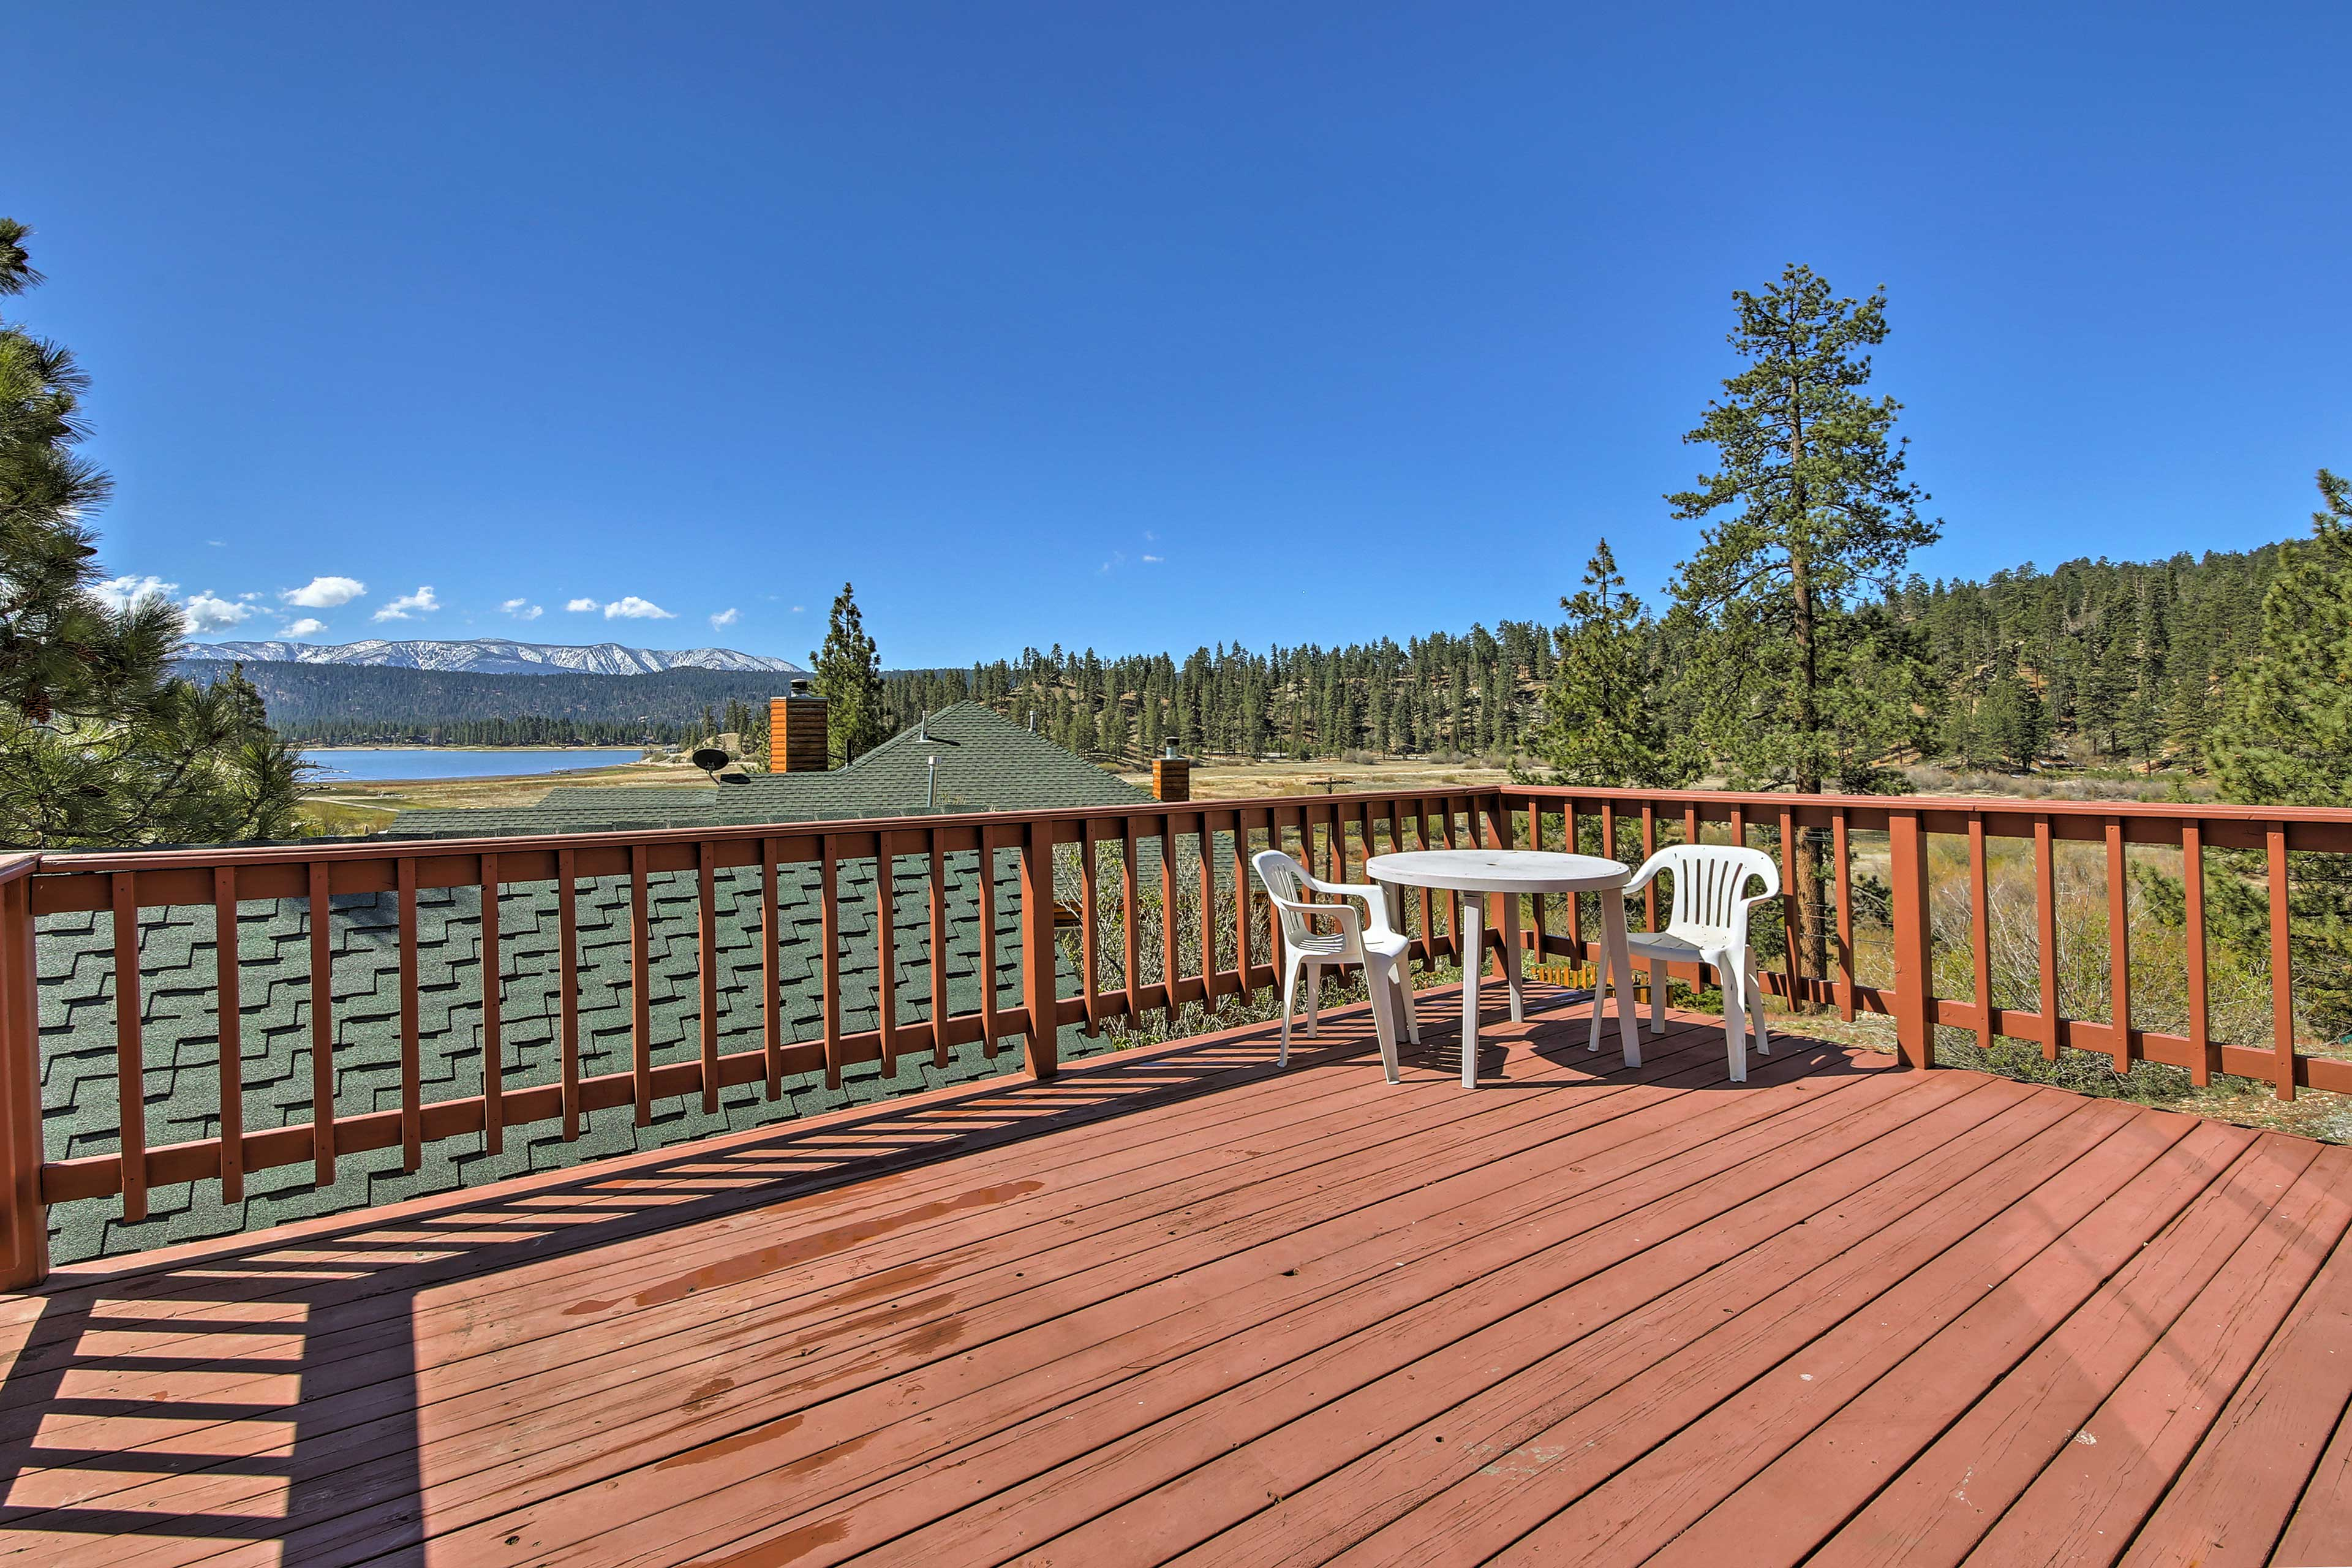 Soak up the sun and mountain air from the deck with views of Big Bear Lake!